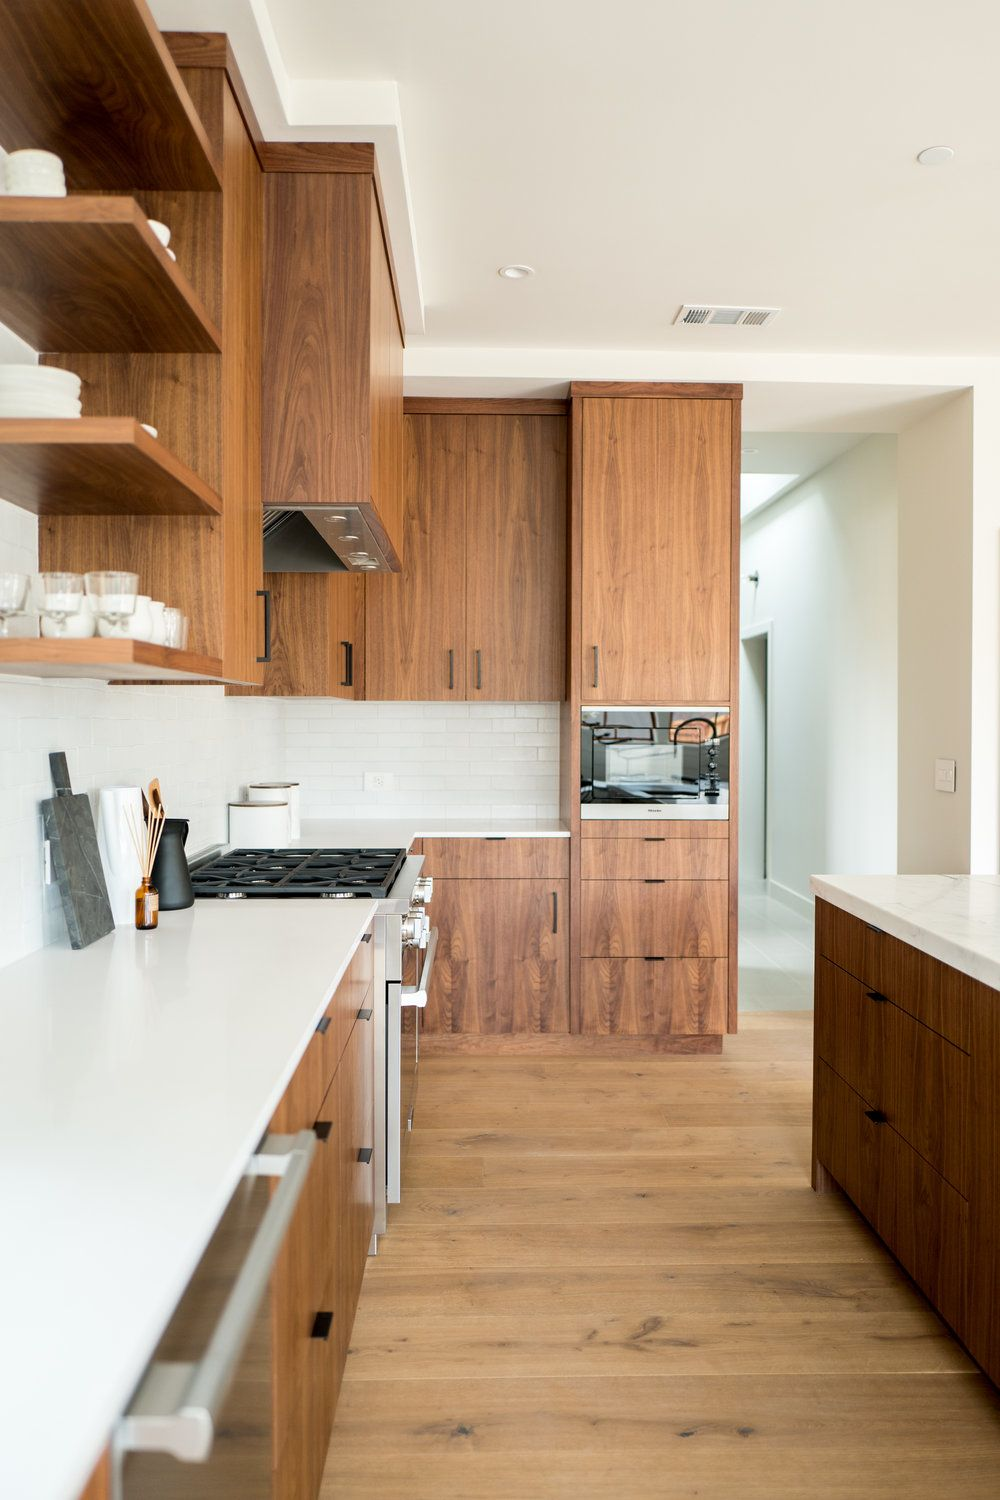 Mid Century Style Cabinetry In The Kitchen With Walnut Cabinets Modern Ledge Pulls Hardware Wood Cabinets With Walnut Cabinets Walnut Kitchen Wood Cabinets